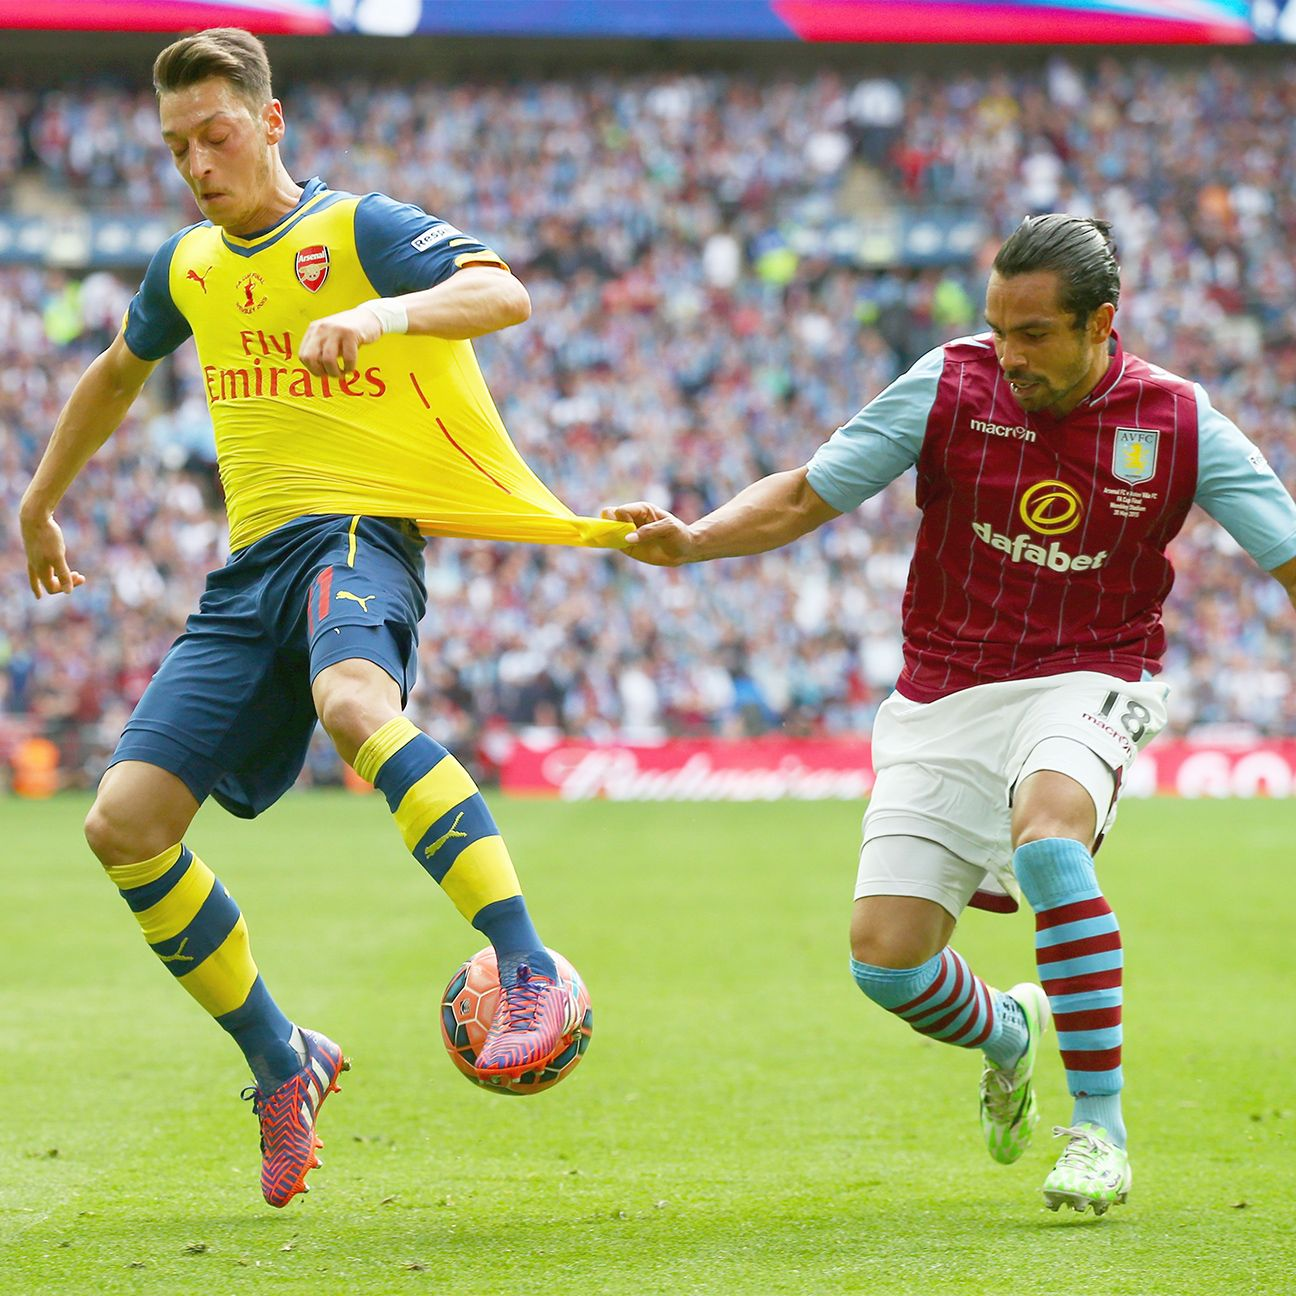 Arsenal midfielder Mesut Ozil led the league in chances created last season.